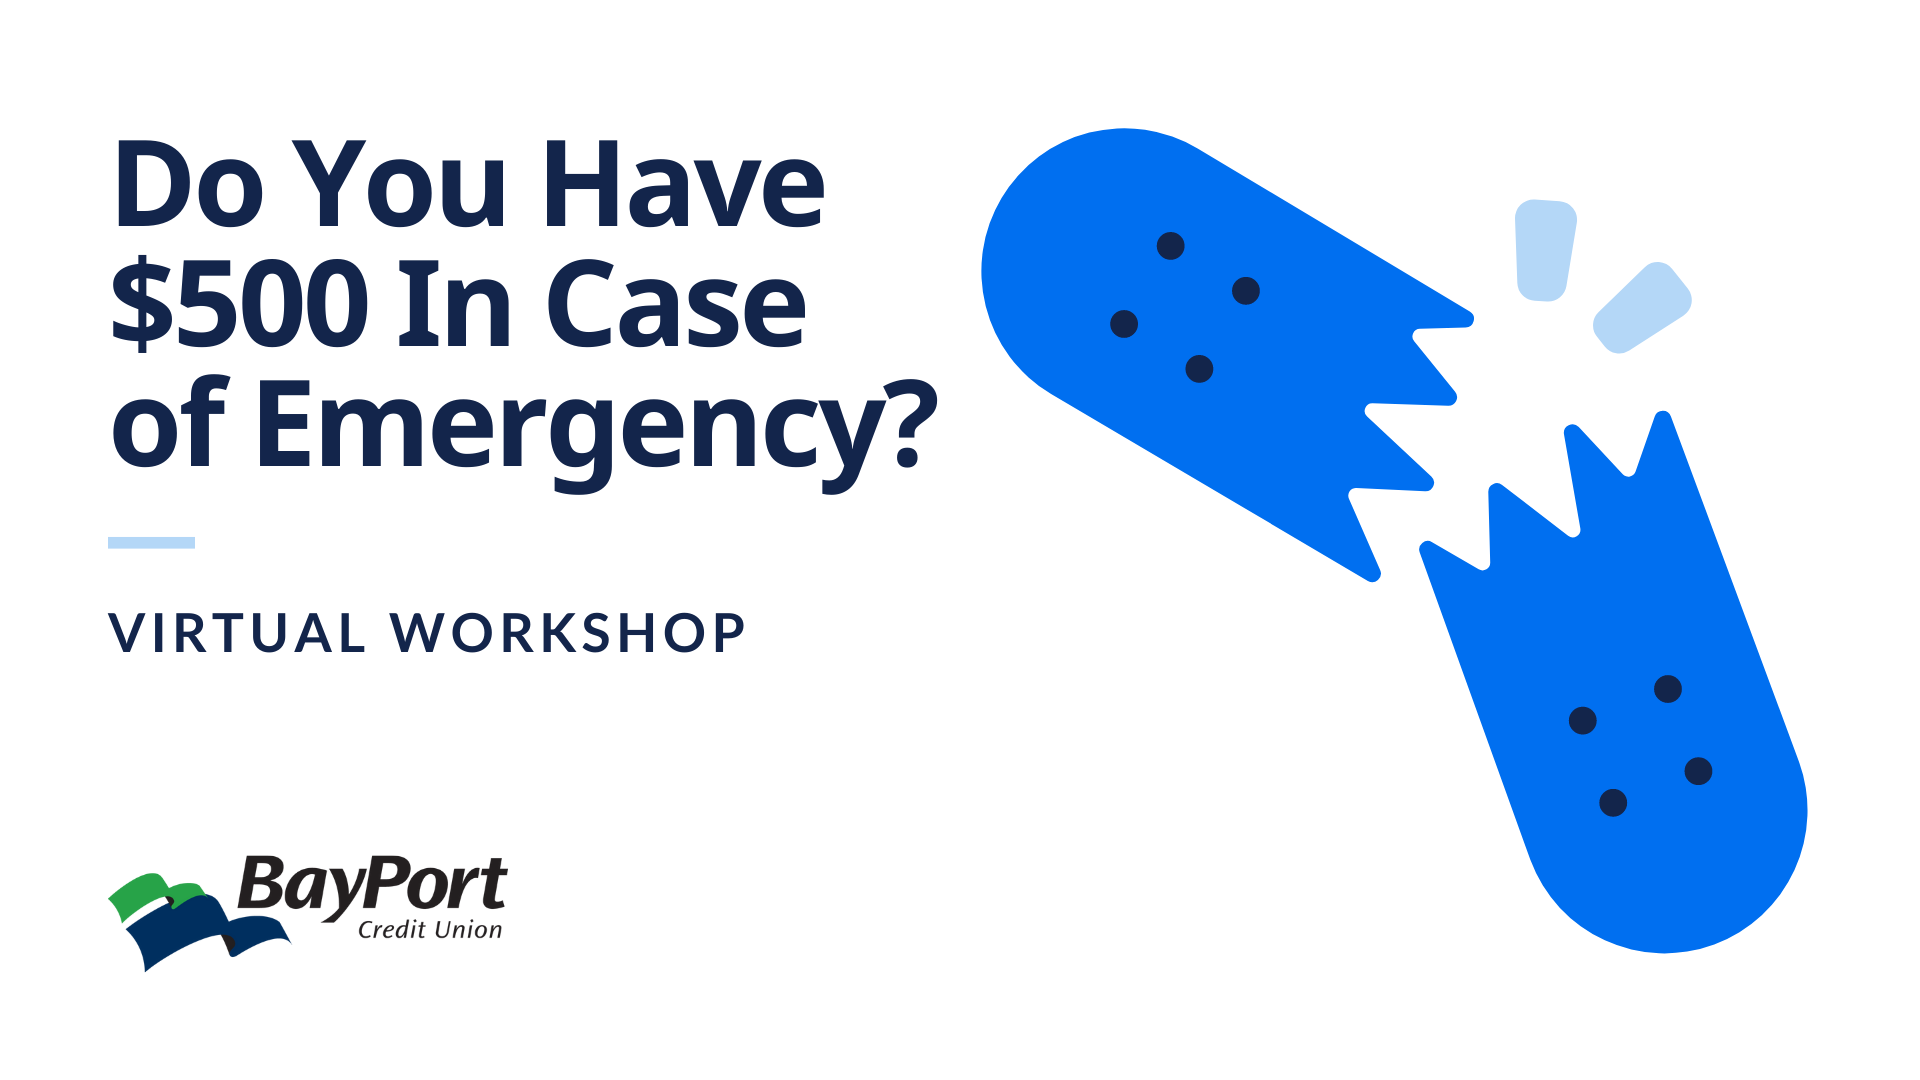 Do You Have $500 In Case of Emergency?